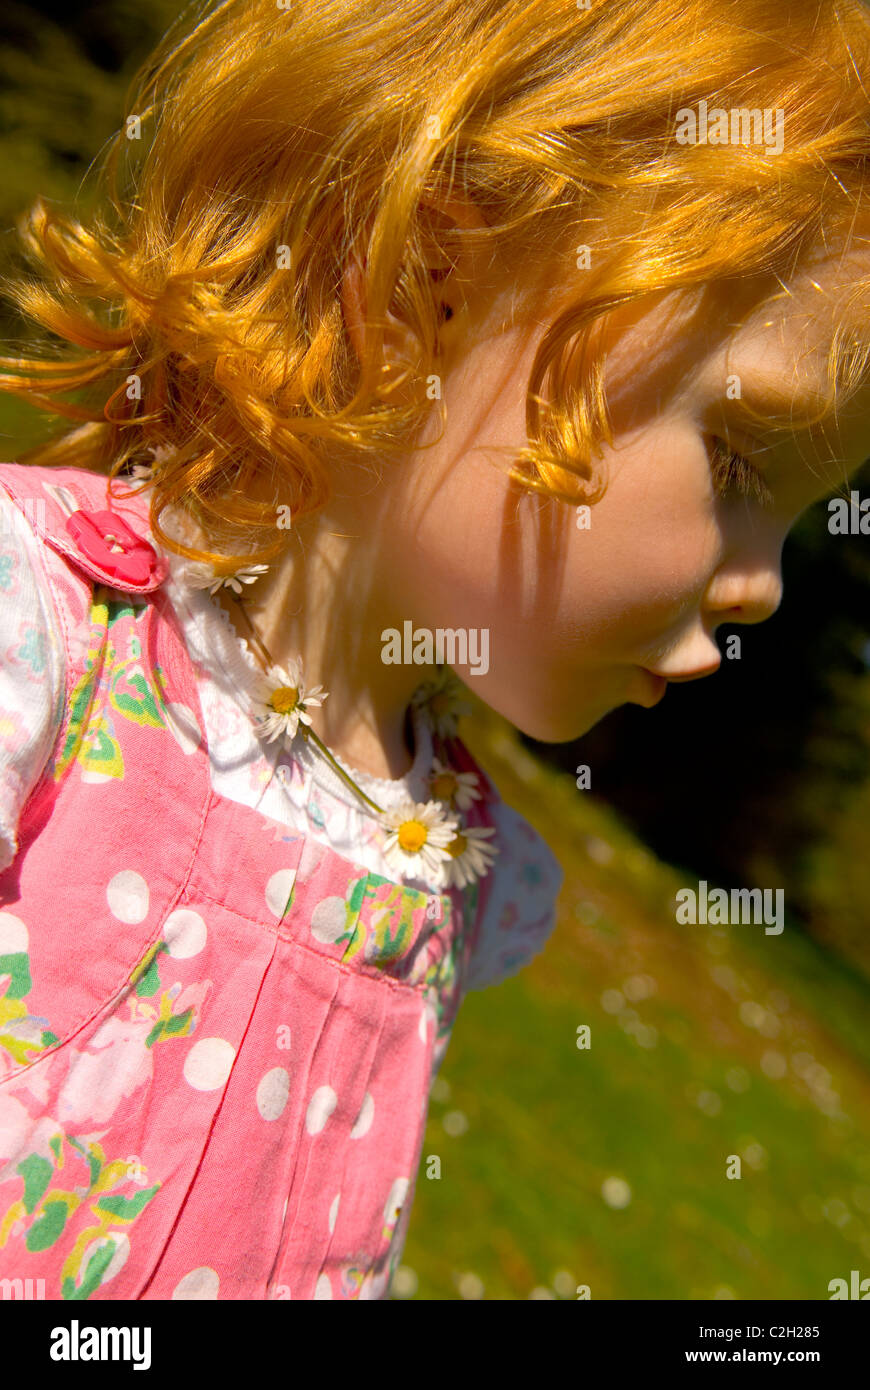 Young red headed girl in a pink dress wearing a daisy chain - Stock Image